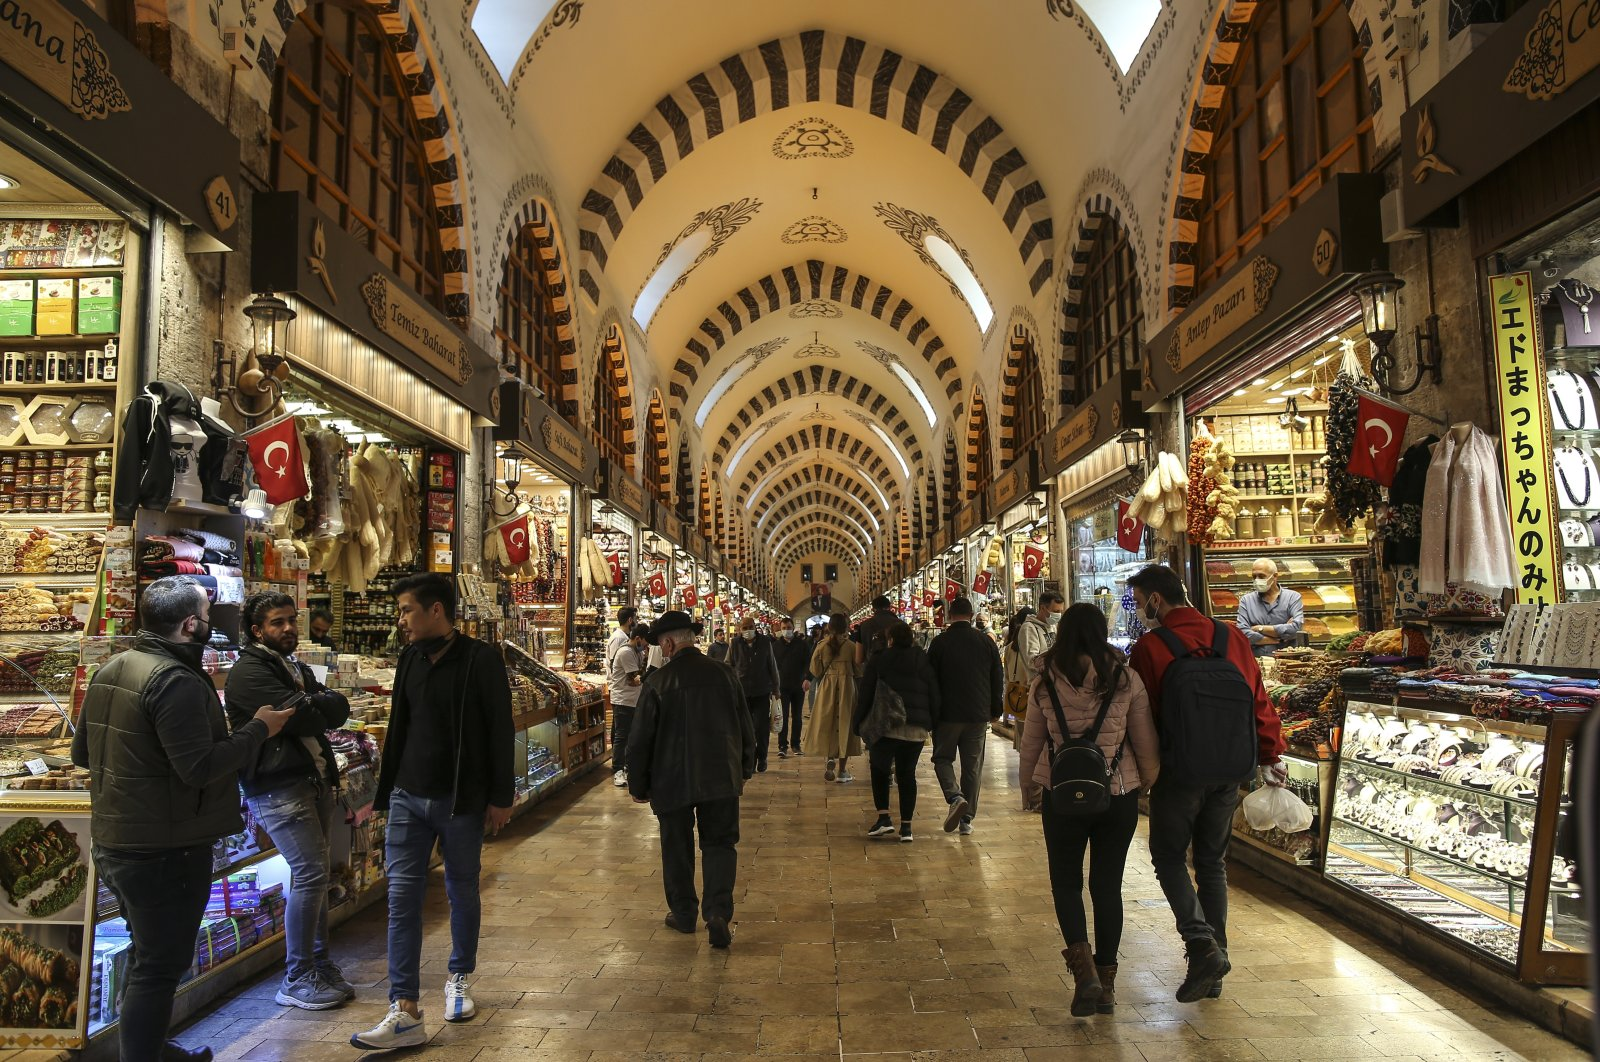 People walk inside the historical Egyptian Bazaar, in Istanbul, Turkey, April 13, 2021. (AP Photo)